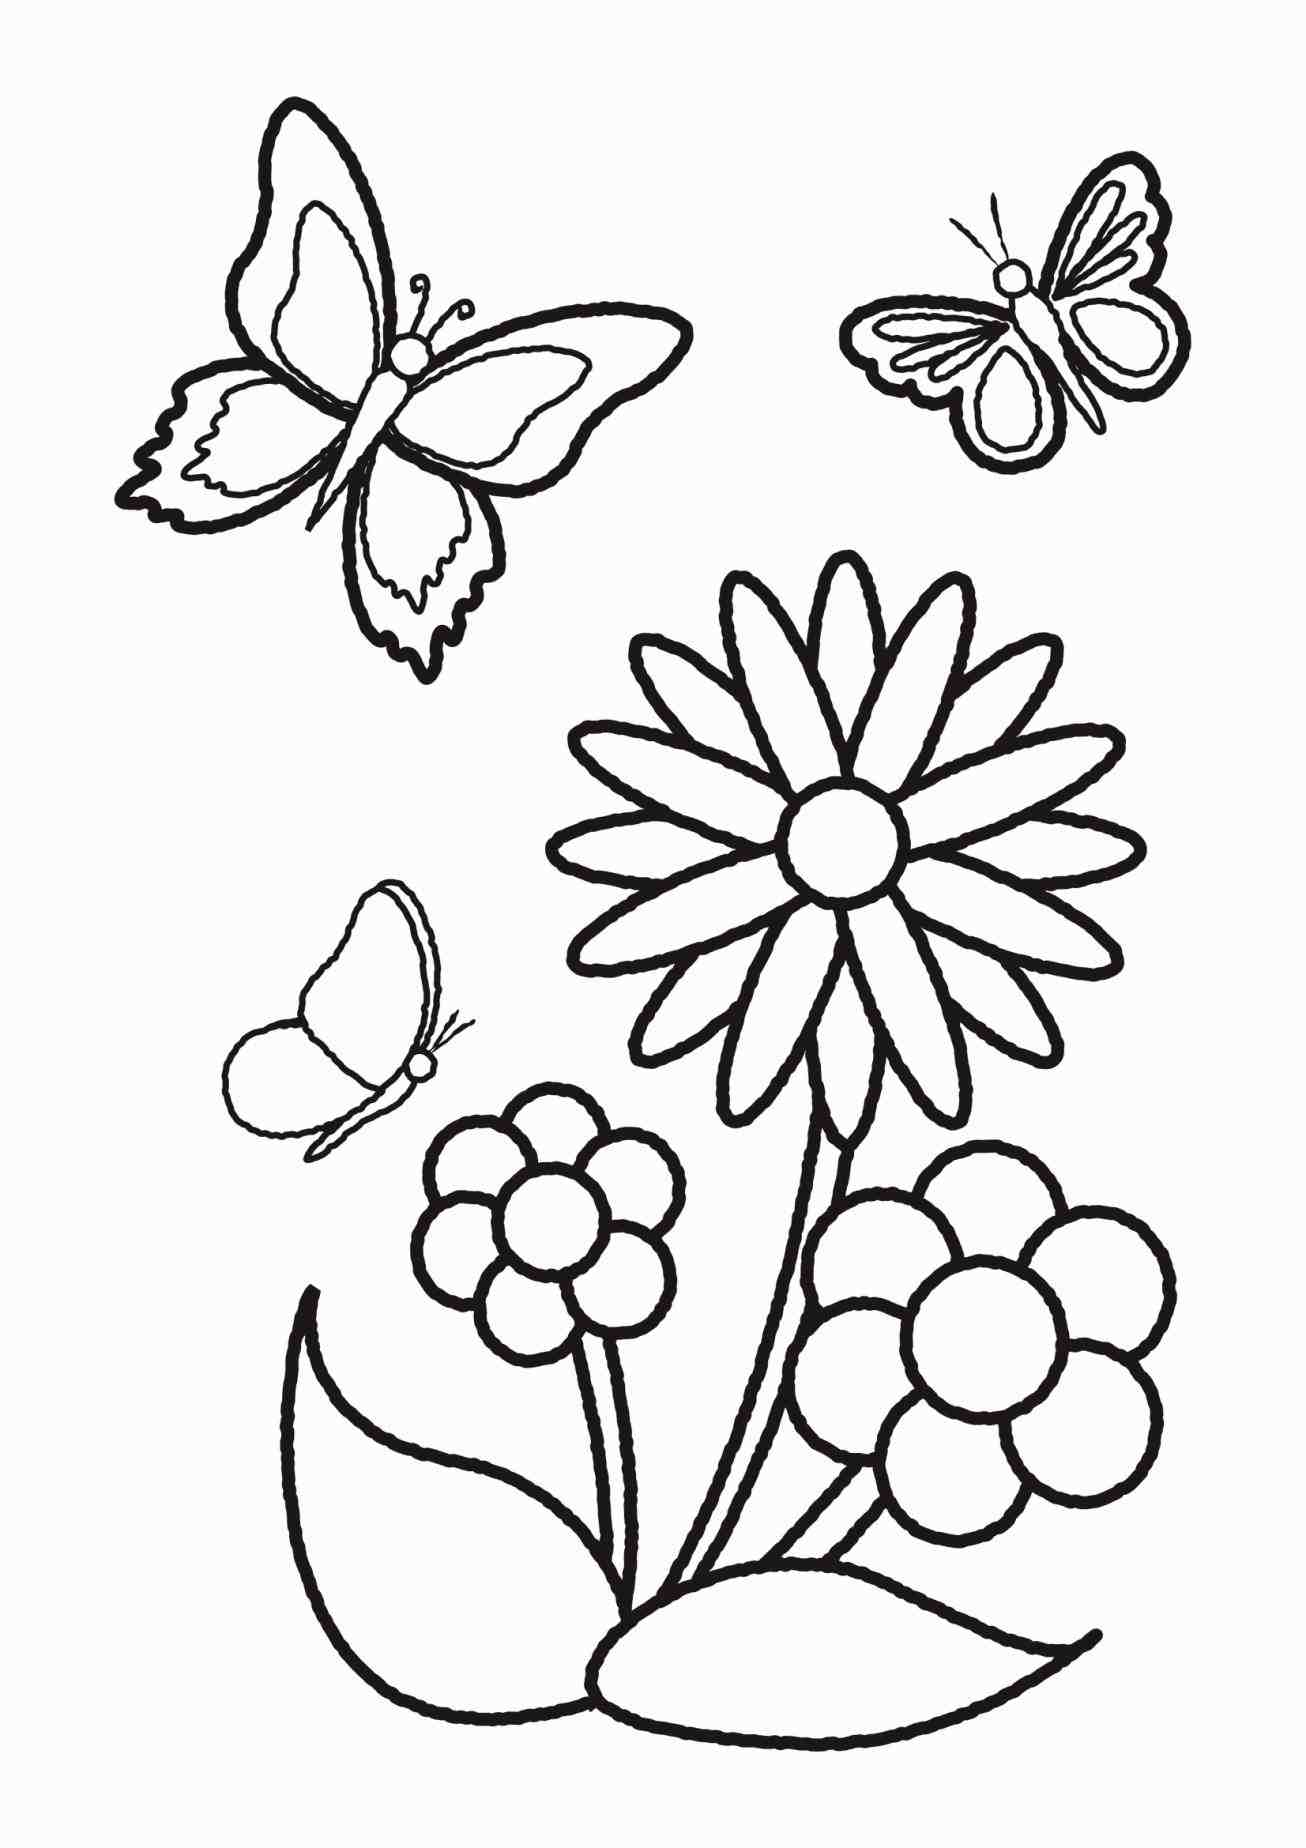 1306x1848 Art Flower Clipart Collection To Draw Flower Good Easy Drawings